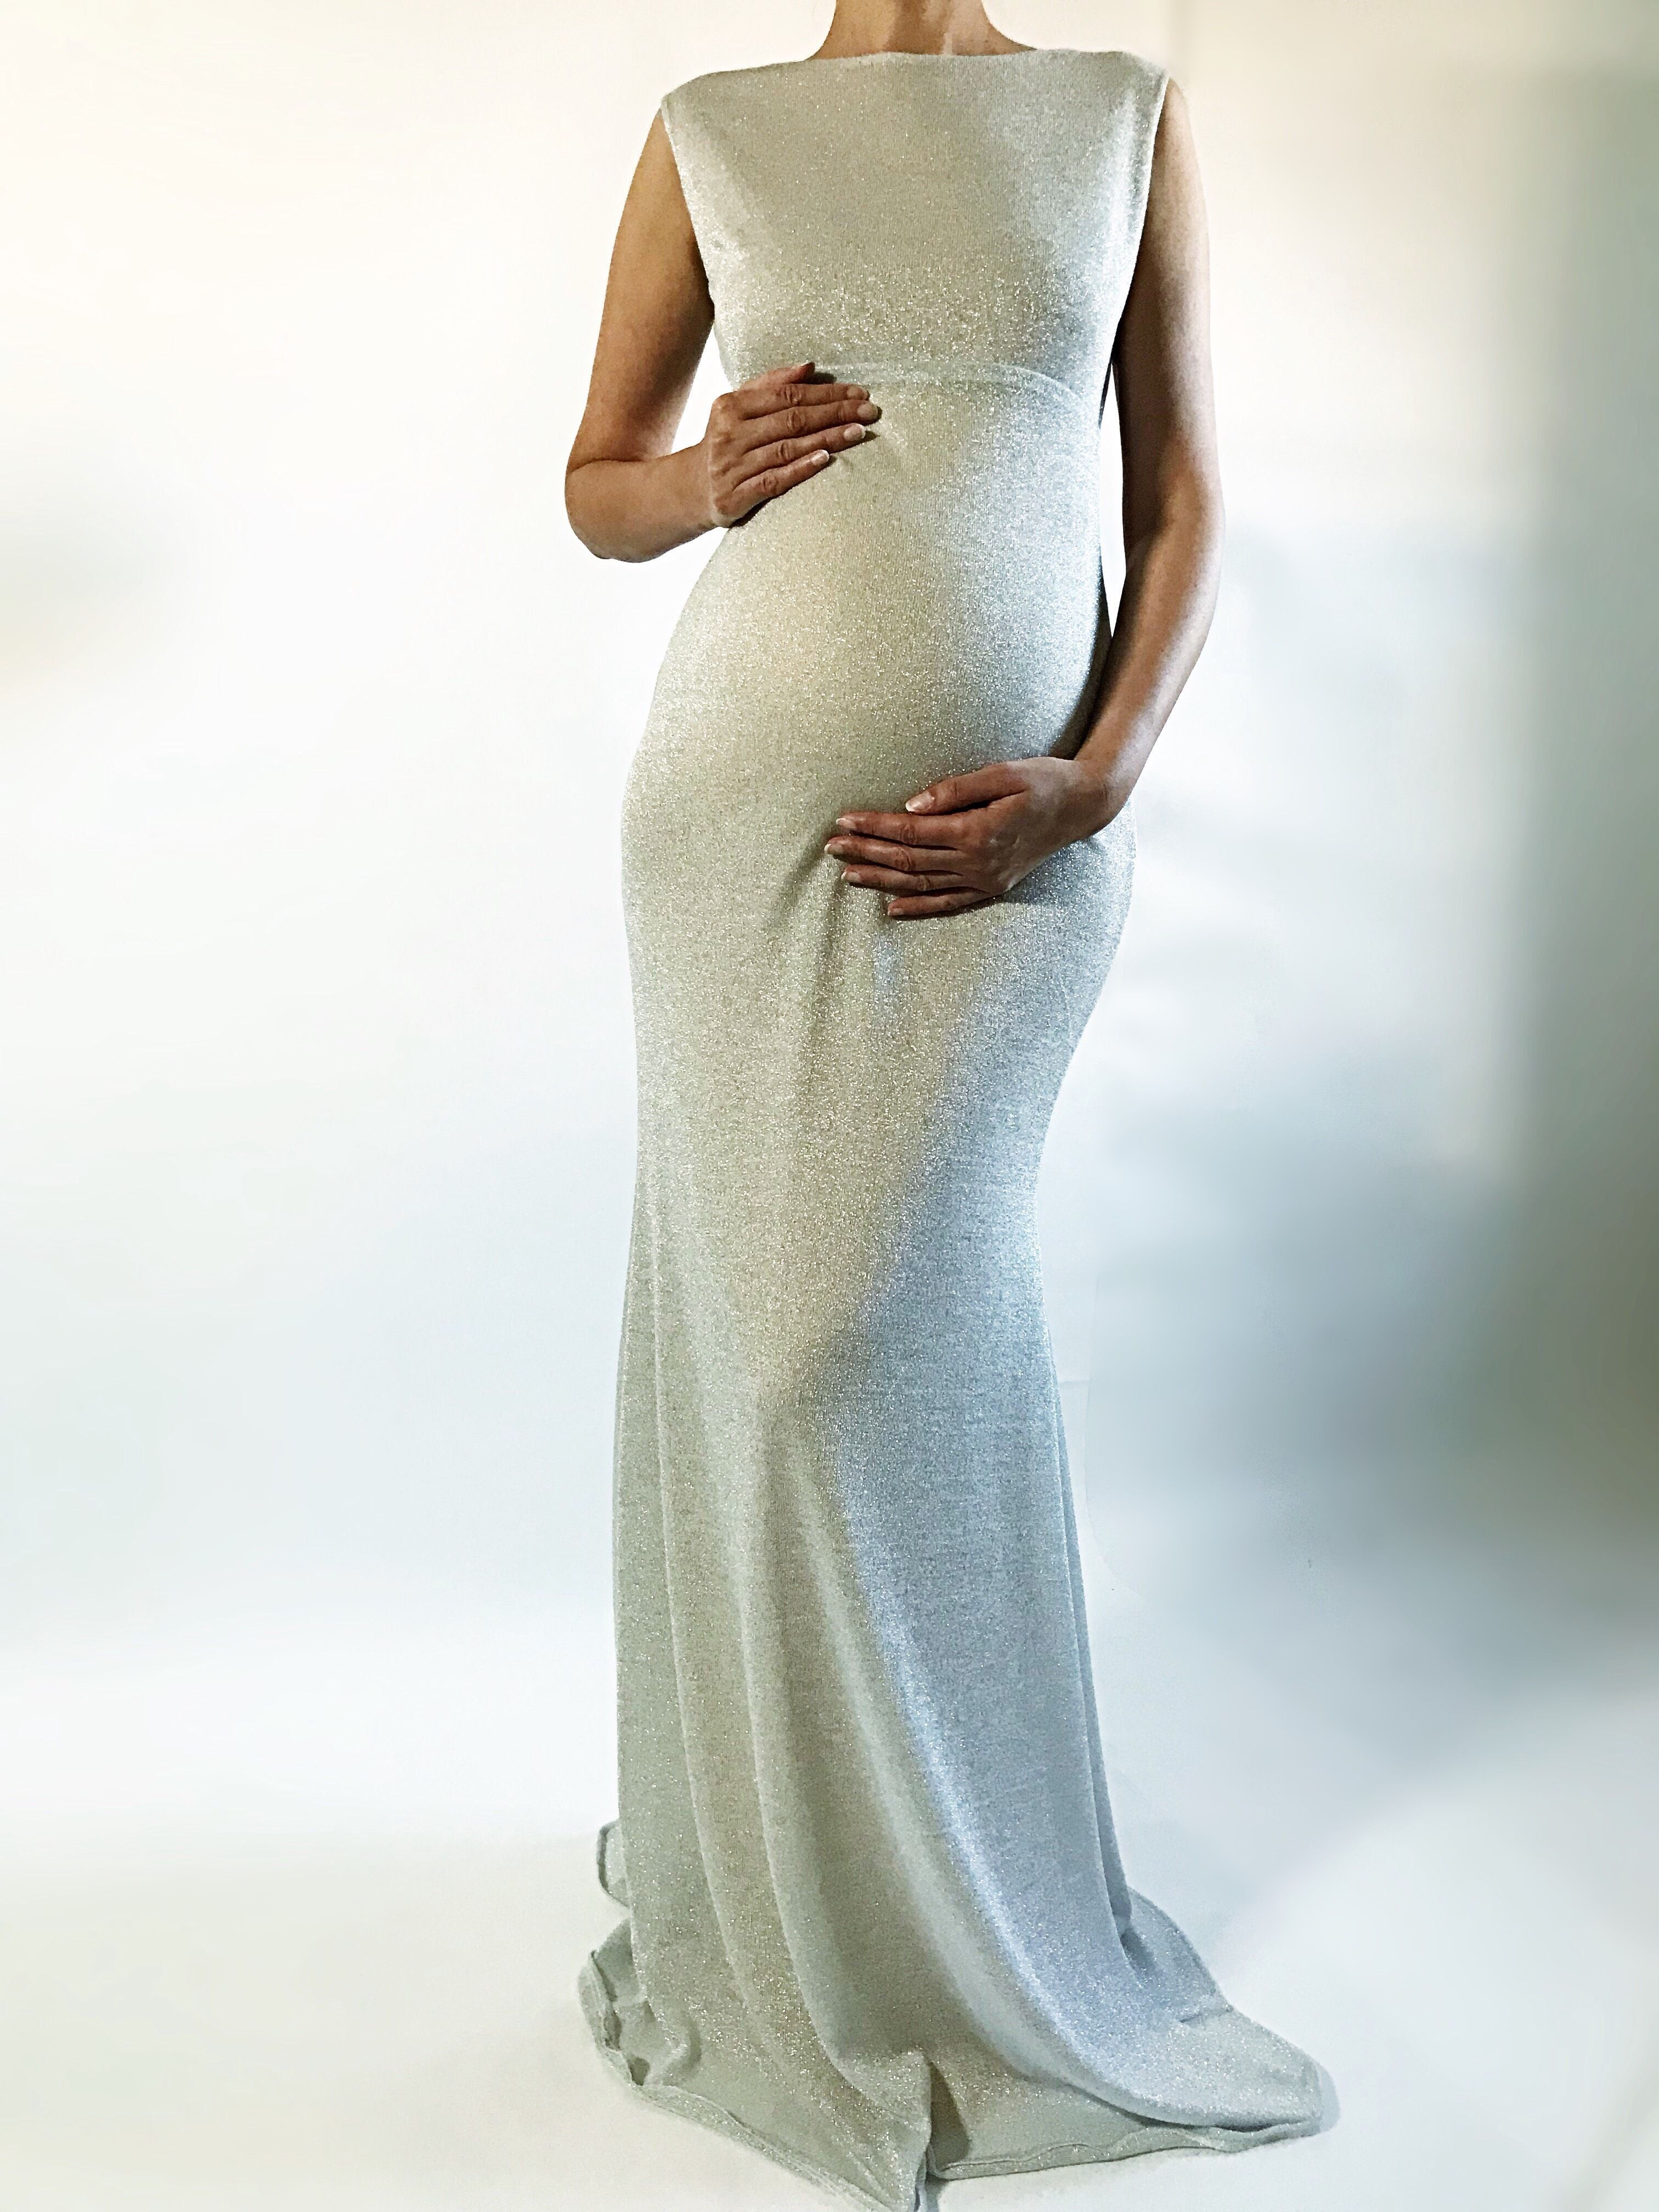 Stunning christmas maternity dress maternity outfits evening dress stunning christmas maternity dress maternity outfits evening dress holiday outfit christmas outfit ombrellifo Images